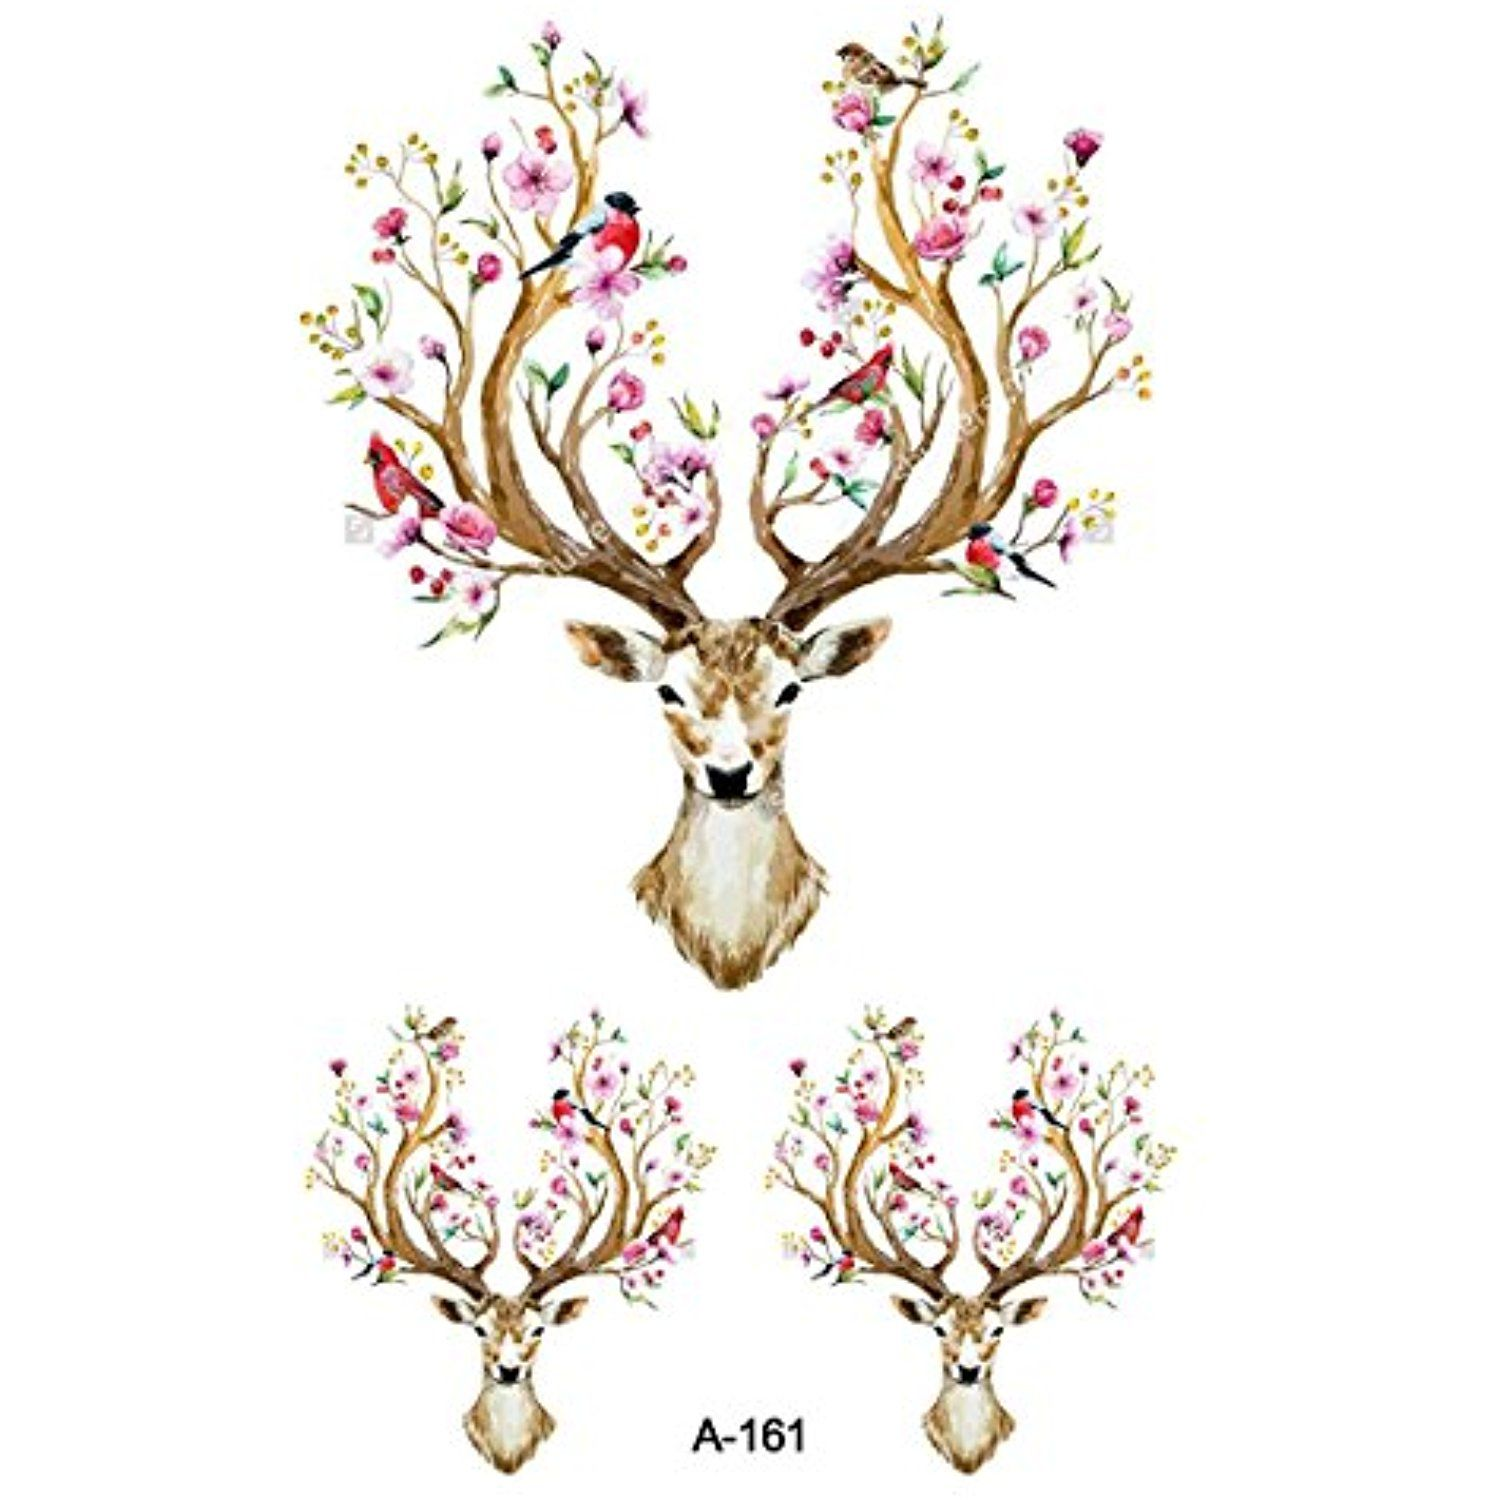 ffffe3b741f94 WYUEN 5 Sheets Watercolor Deer Temporary Tattoo Sticker for Men Fake Flower  Tattoo New Design Animal Body Art 9.8X6cm FA-161 *** Check out this great  ...